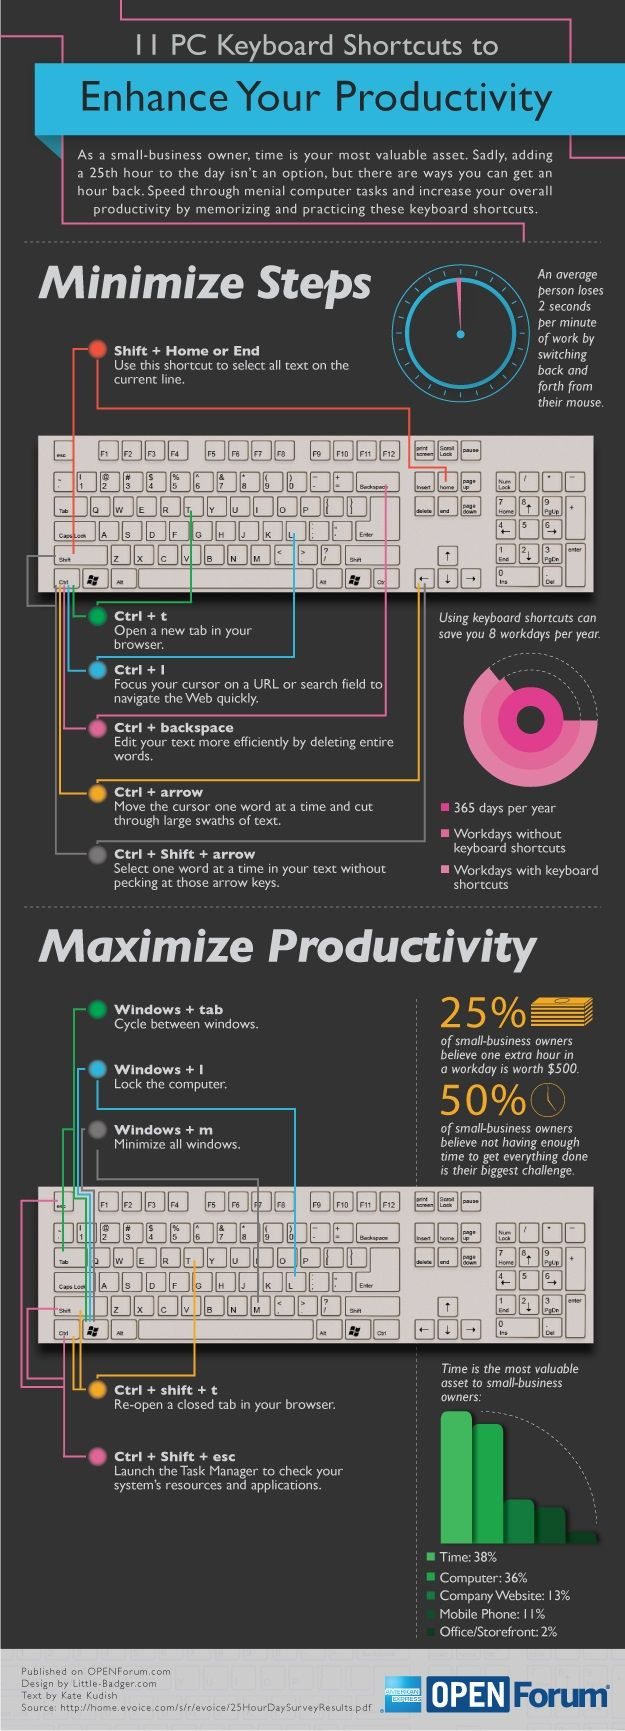 This infographic will teach you time-saving computer tricks.